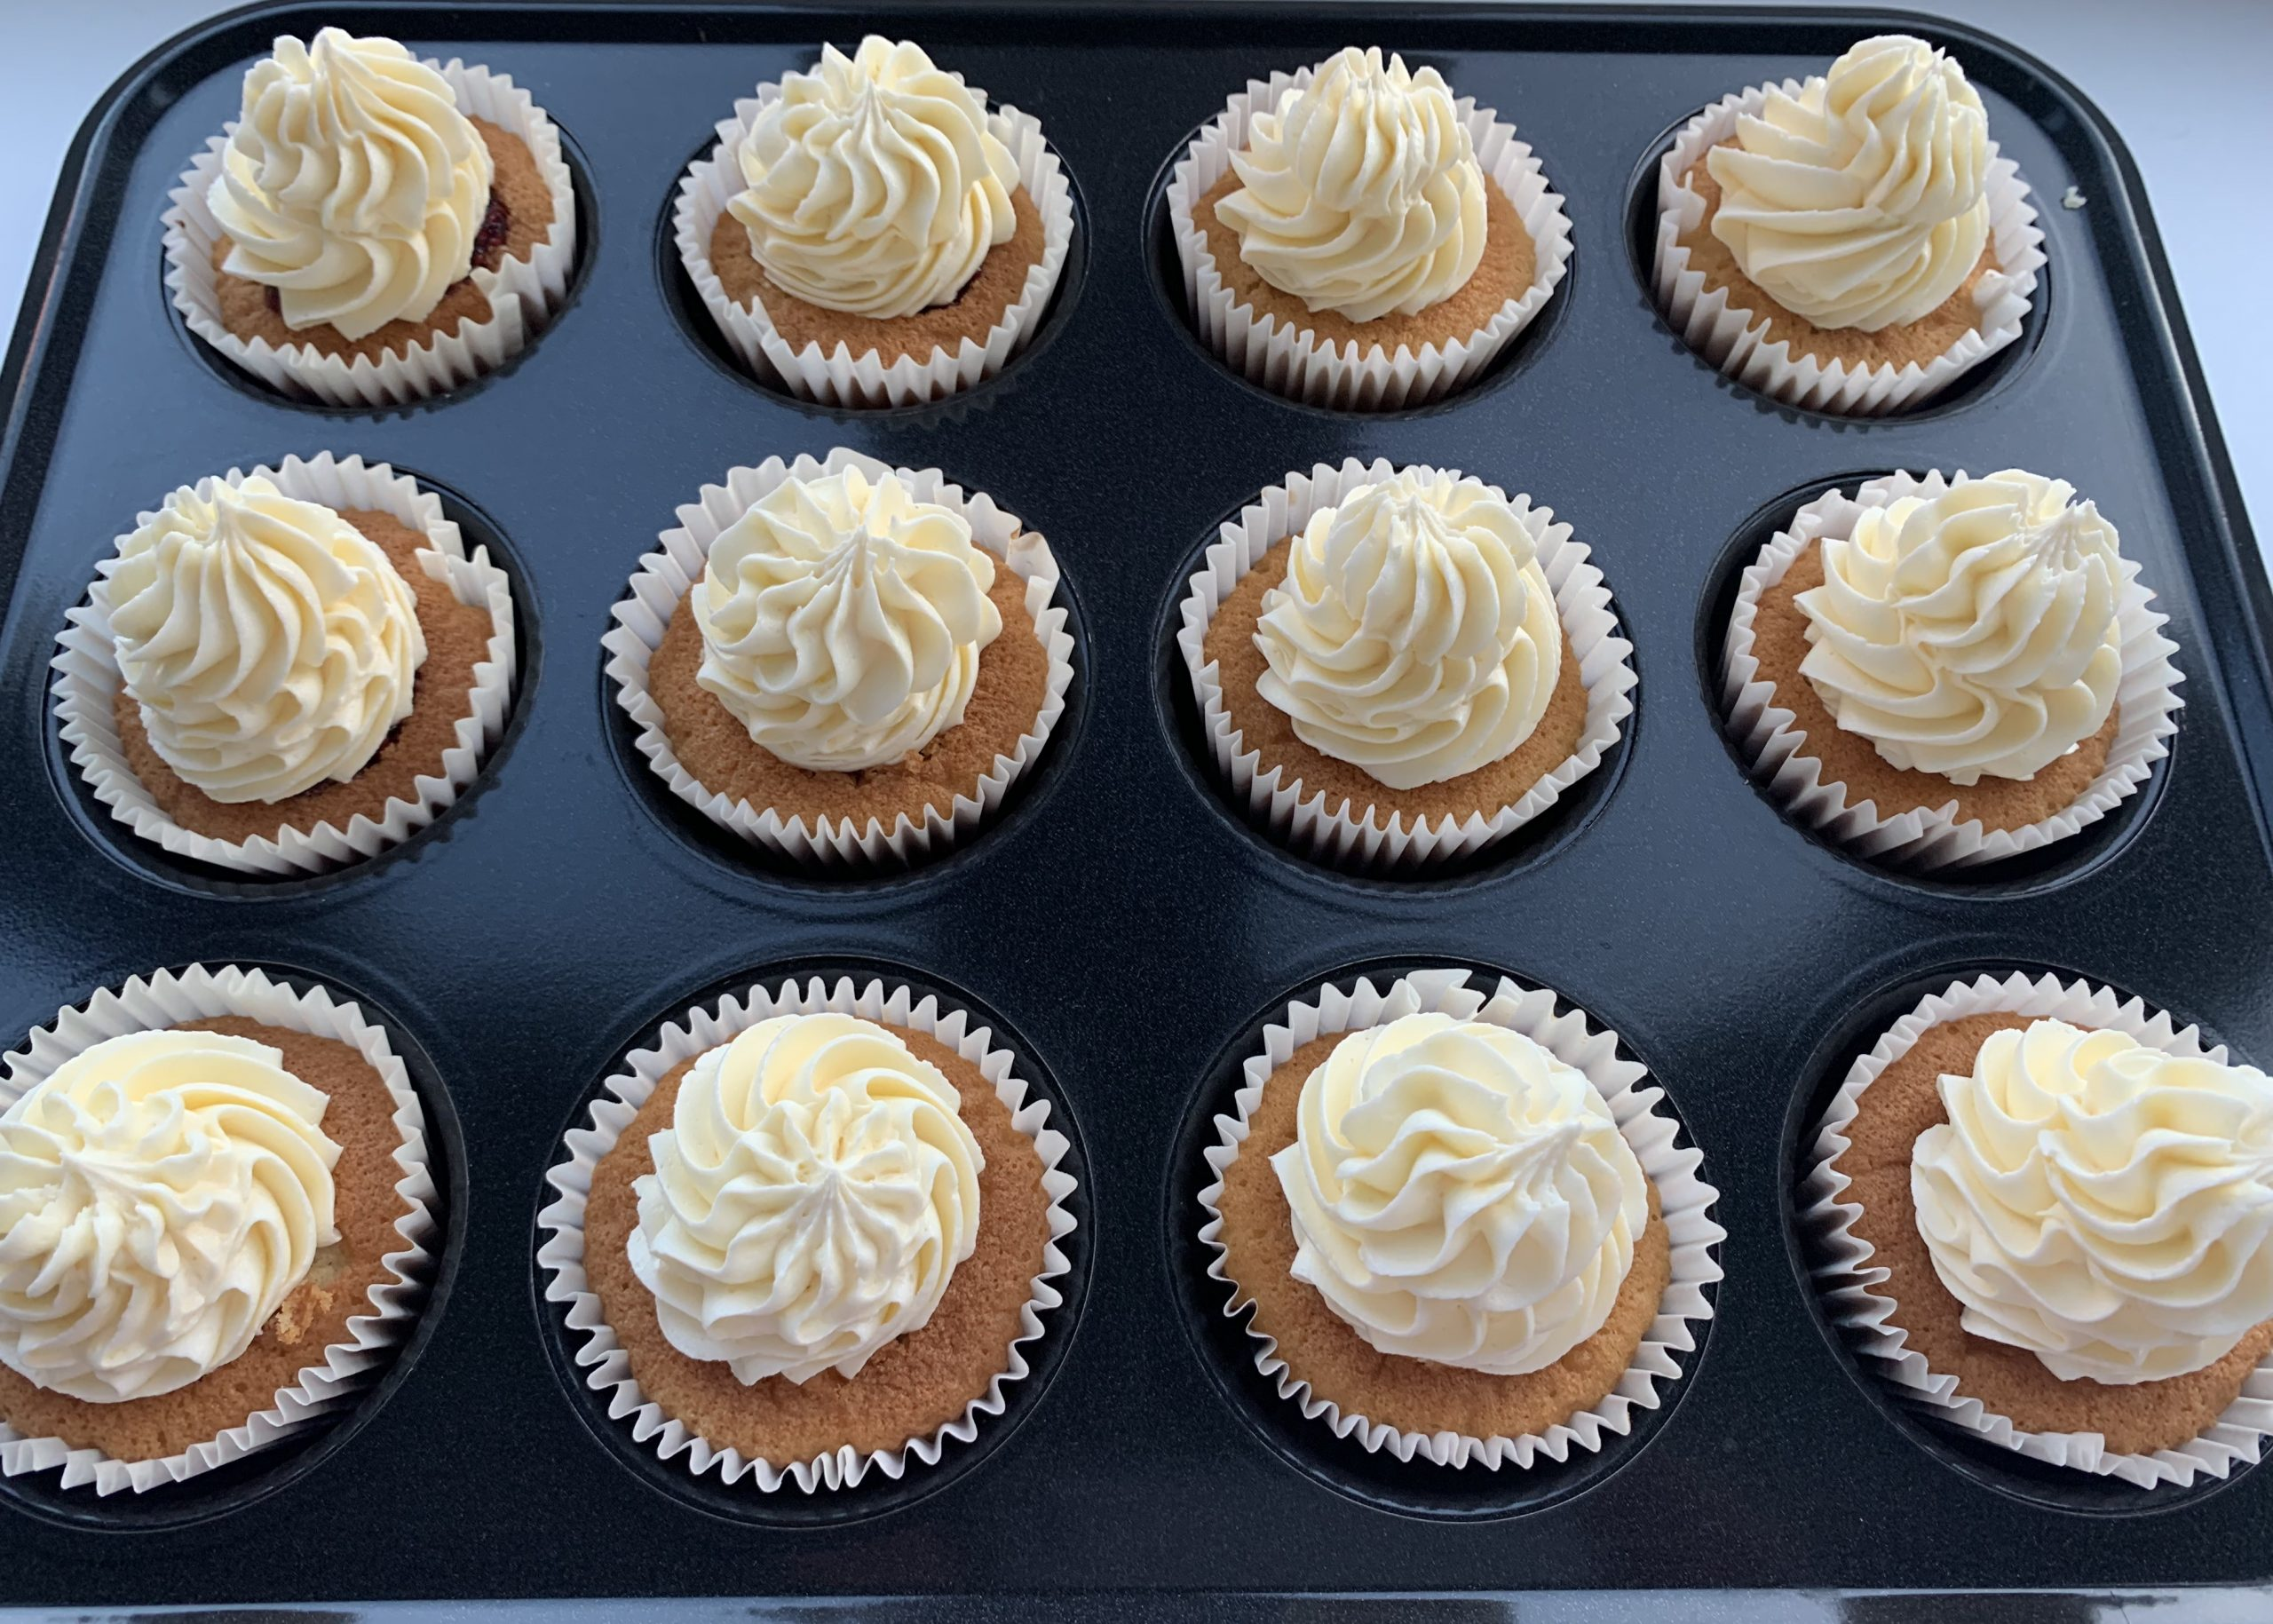 Gluten free butterfly cakes filled with raspberry jam and buttercream